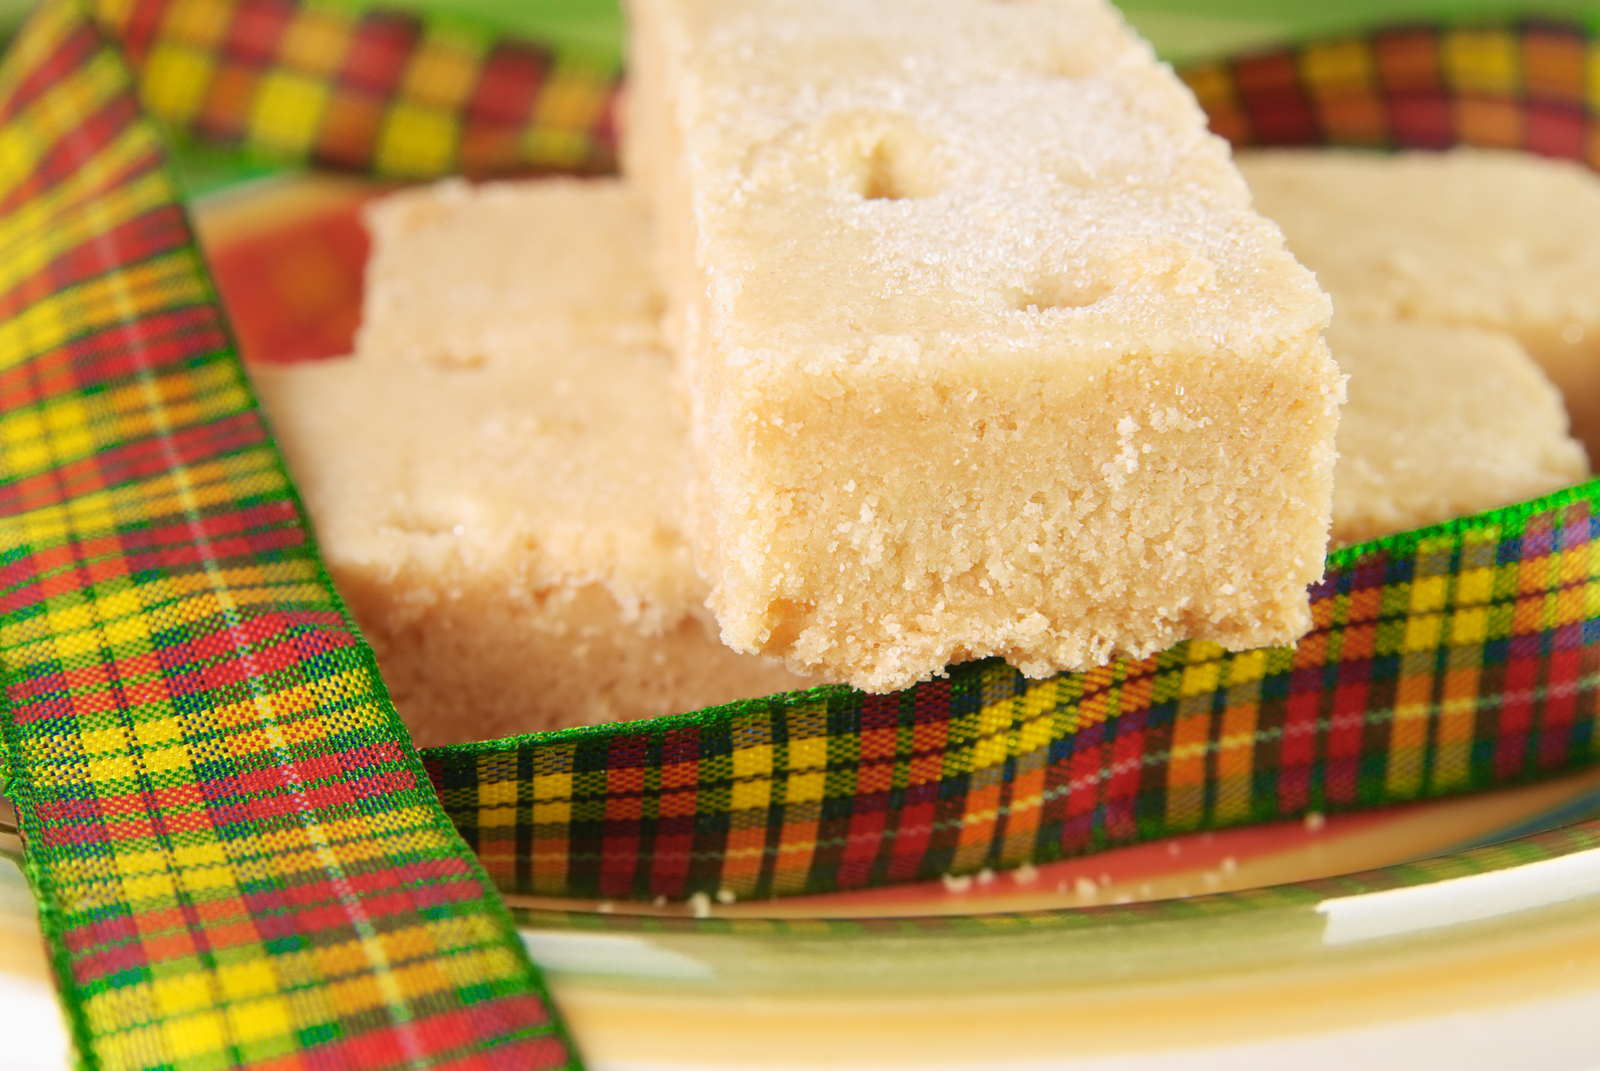 Scottish shortbread can be found throughout Scottish towns, and is a must on your private tour of Scotland